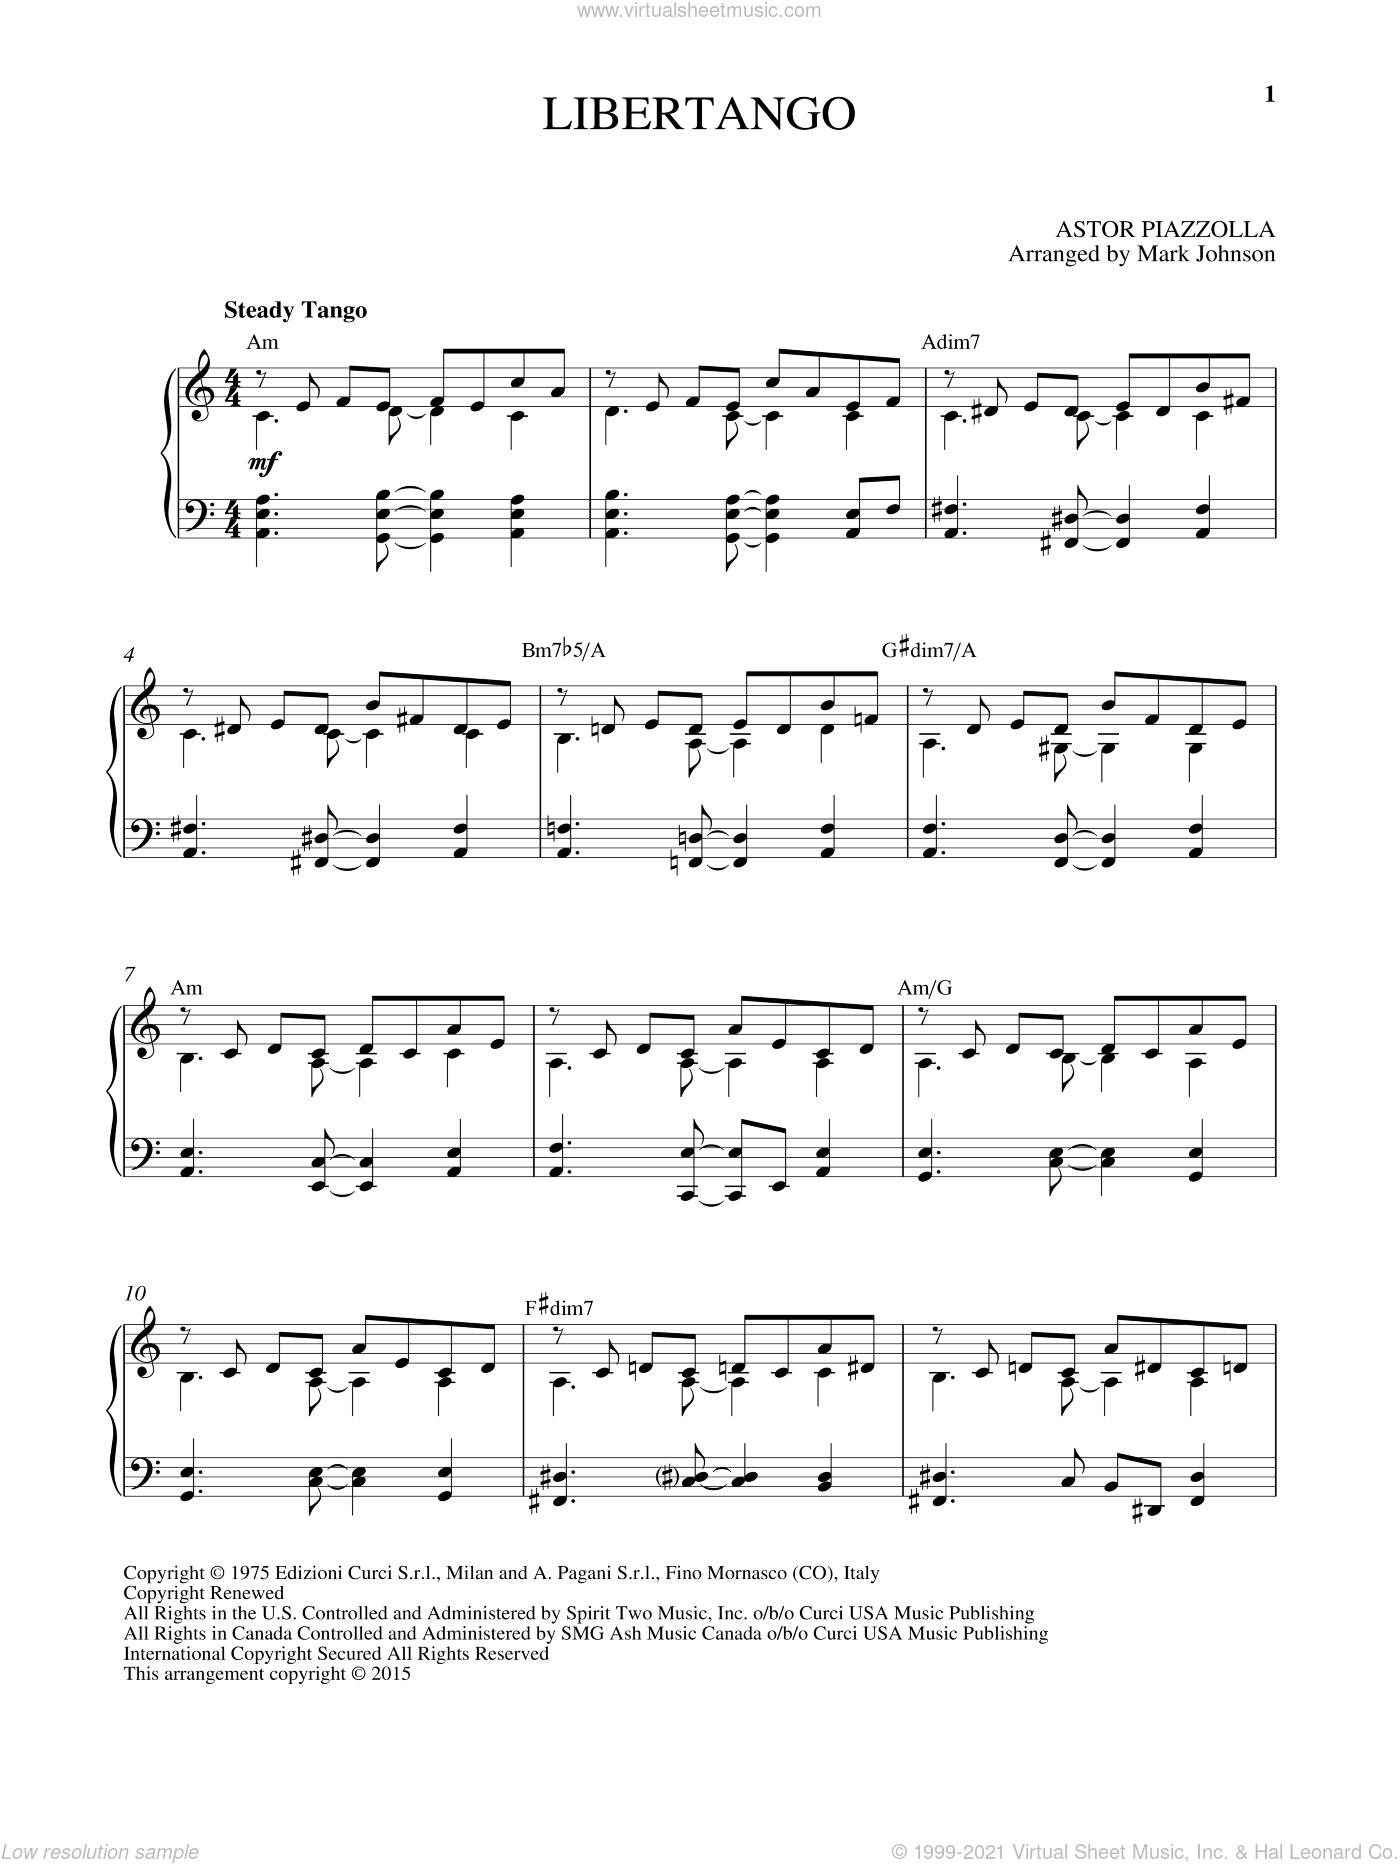 Libertango sheet music for piano solo by Astor Piazzolla